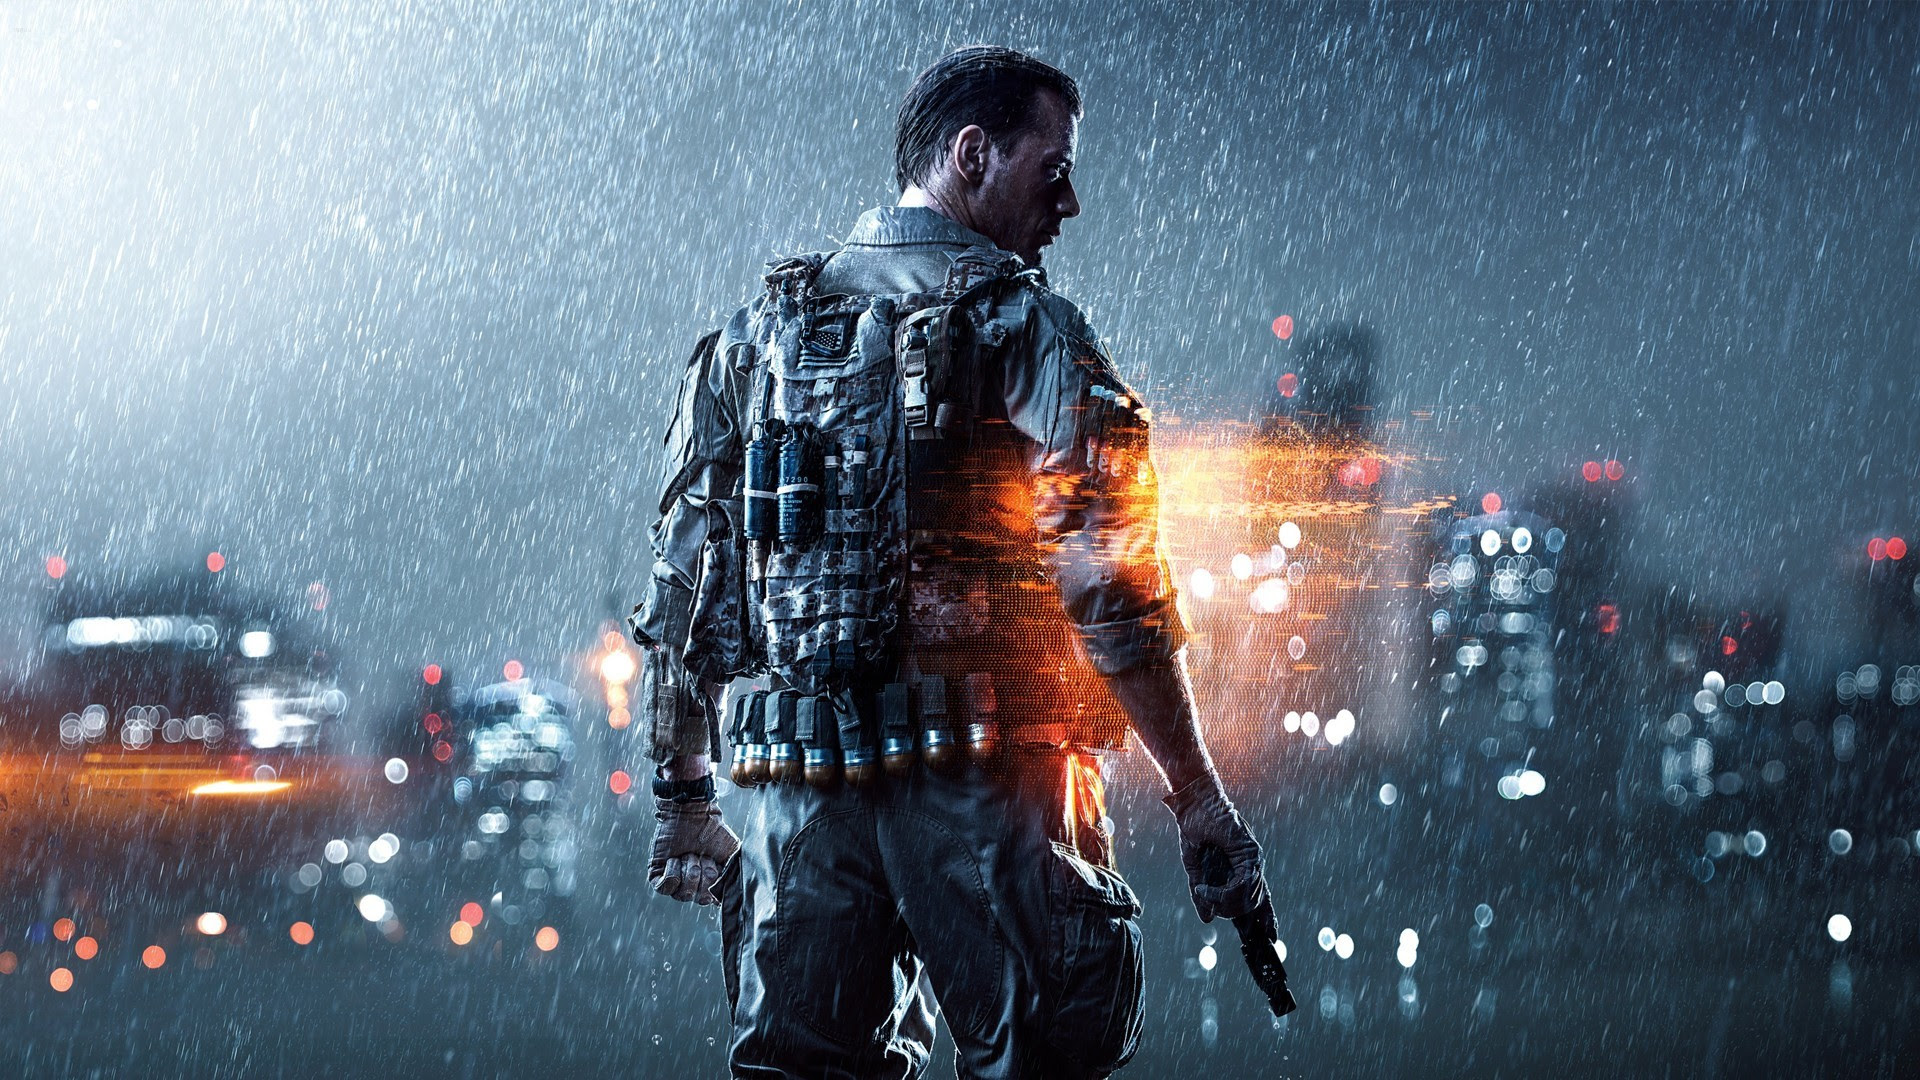 1920x1080 Hd Wallpapers Battlefield 4 80 Images